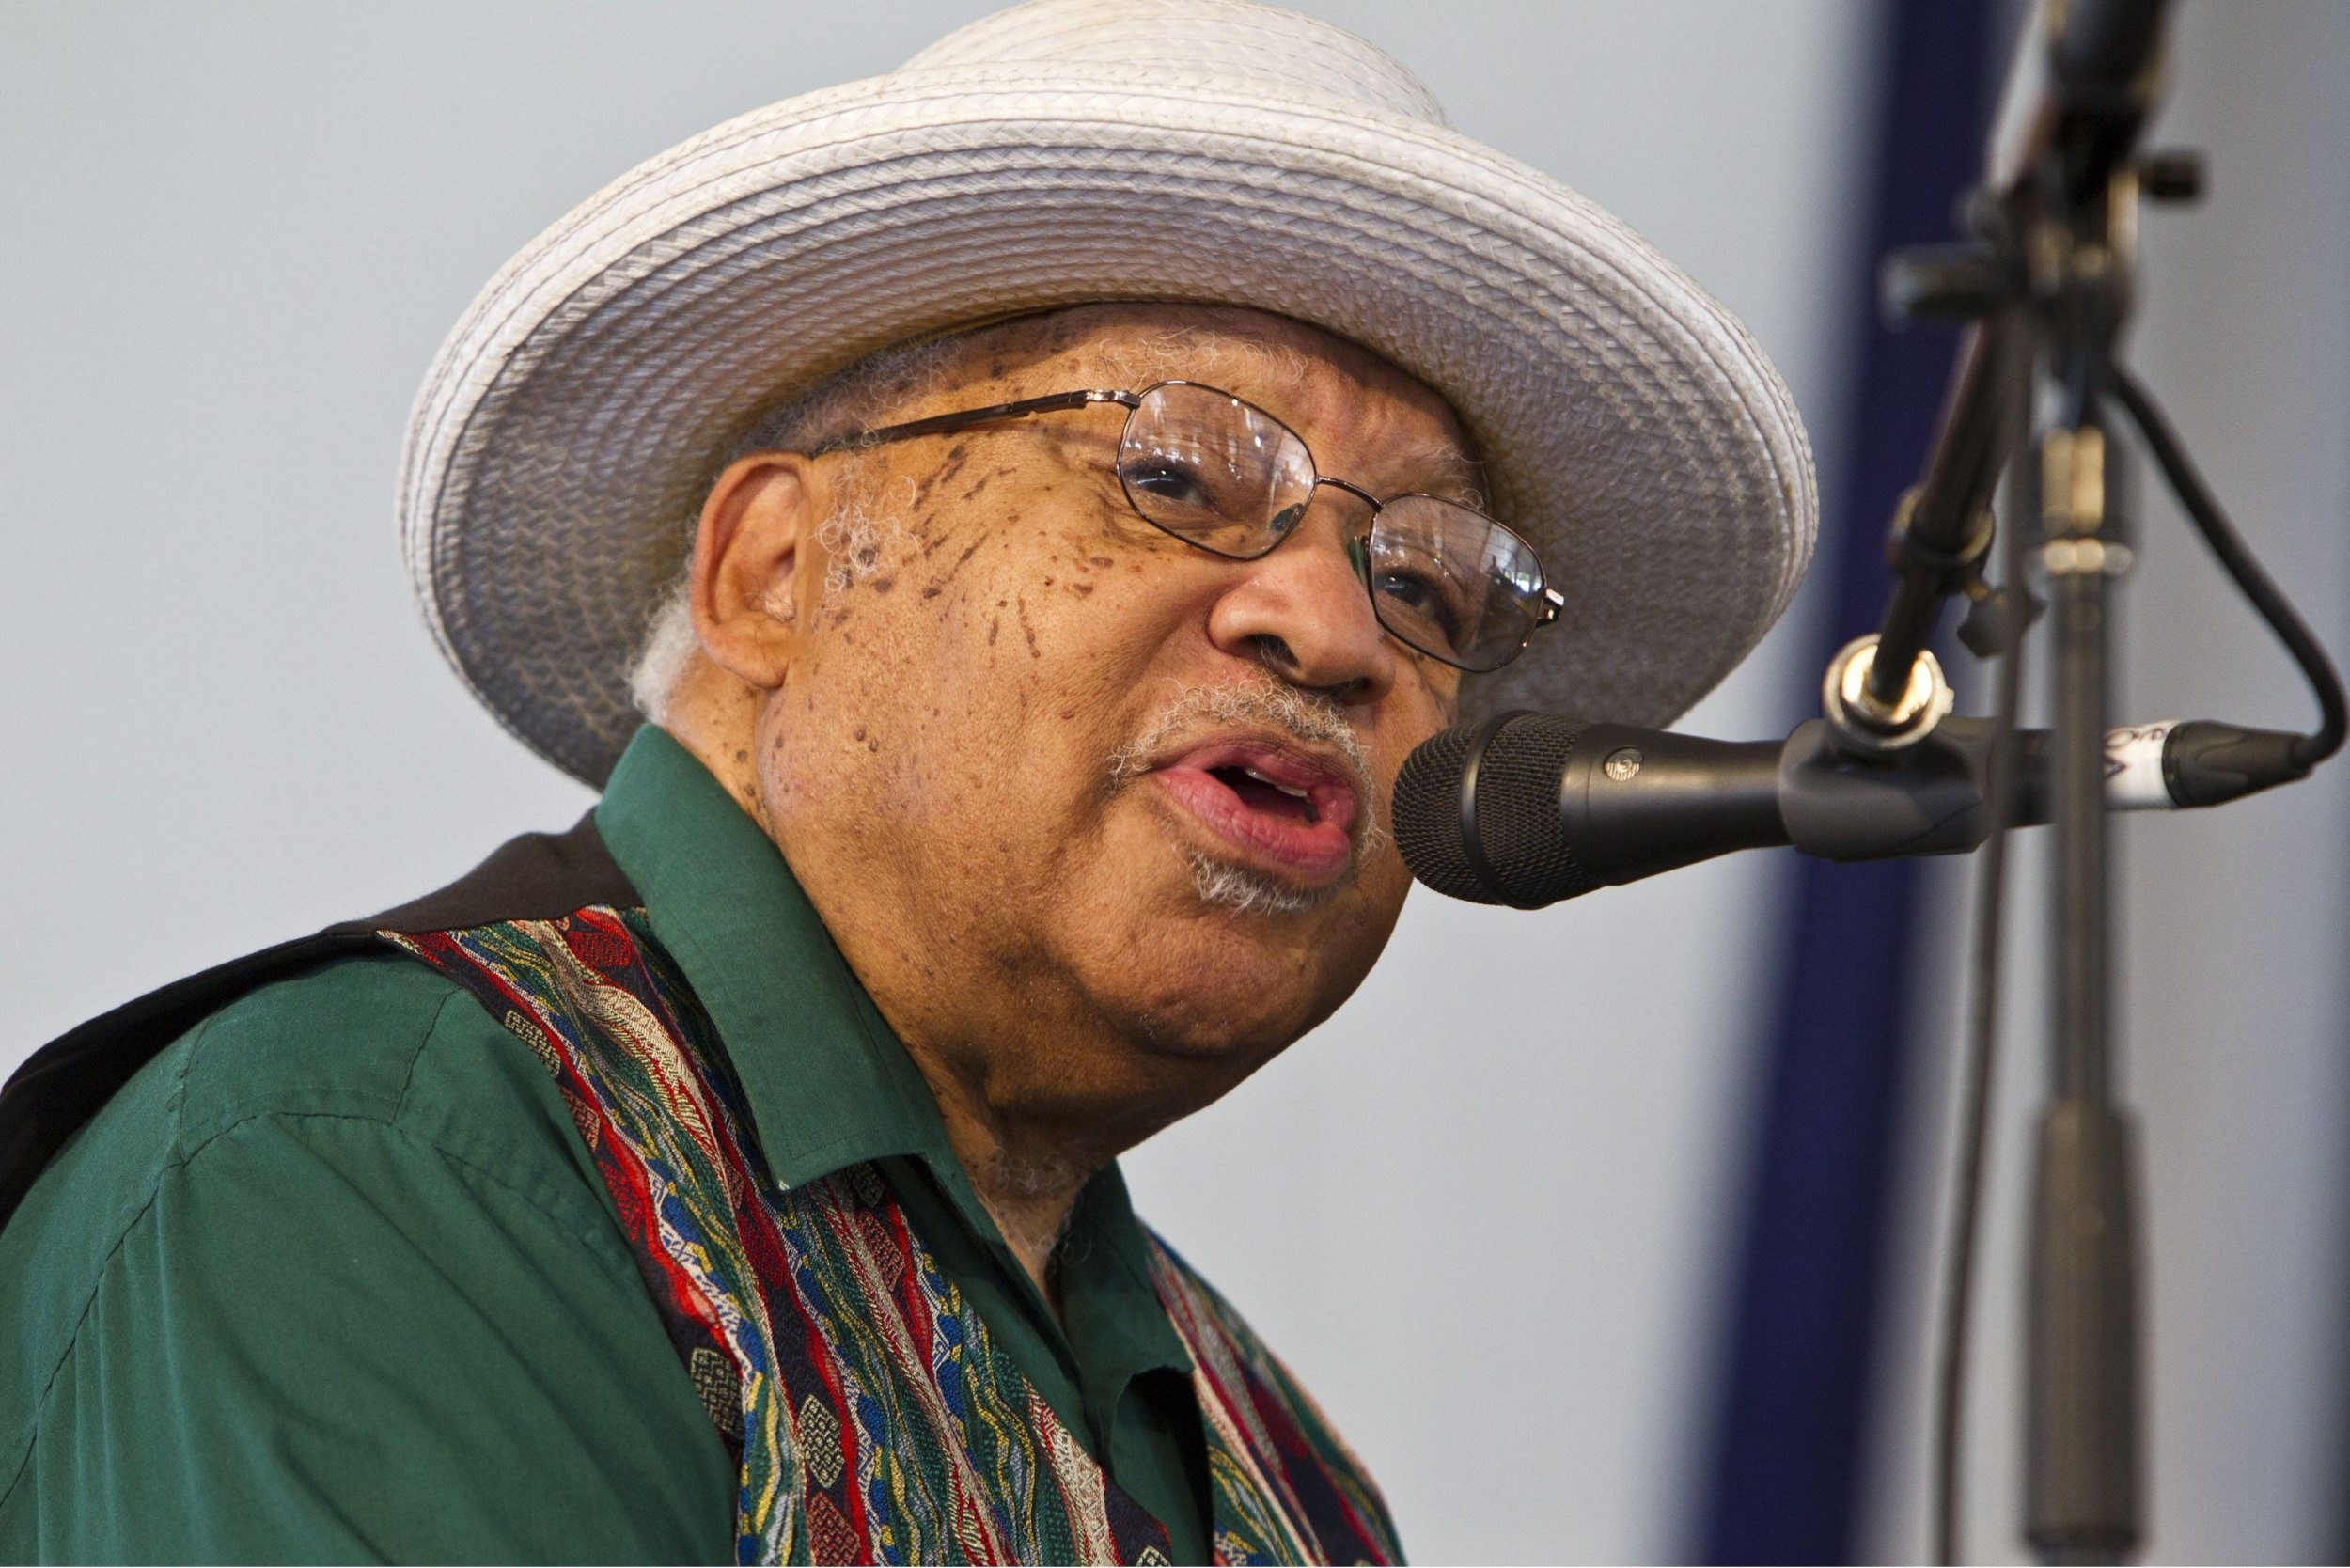 Jazz icon and patriarch Ellis Marsalis Jr dies aged 85 after contracting coronavirus